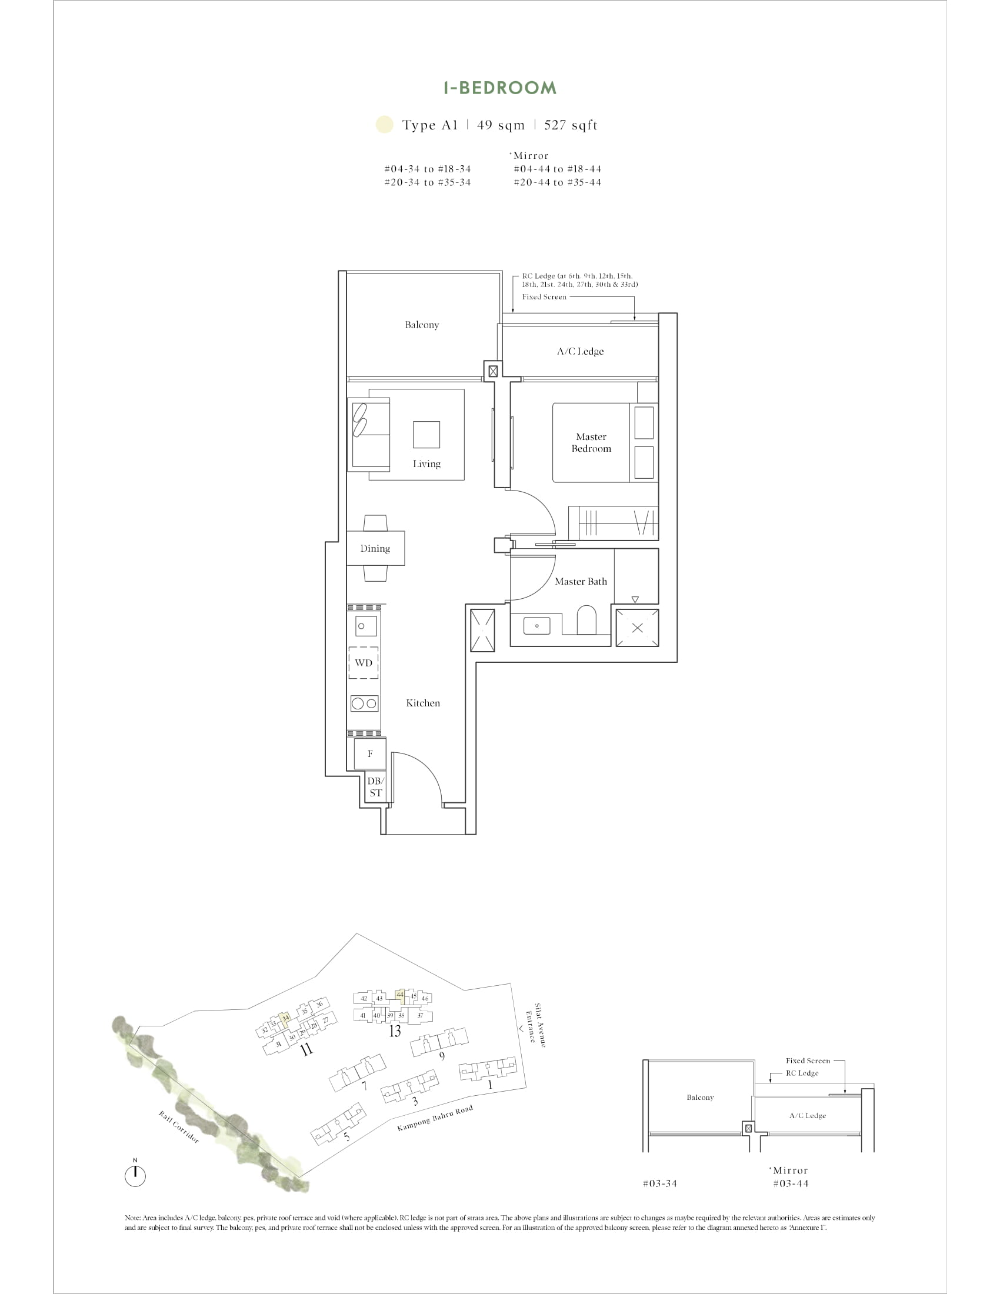 Site And Floor Plan Avenue South Residence Official Website Bernard Koh Sustainable Building Design Floor Plans Residences